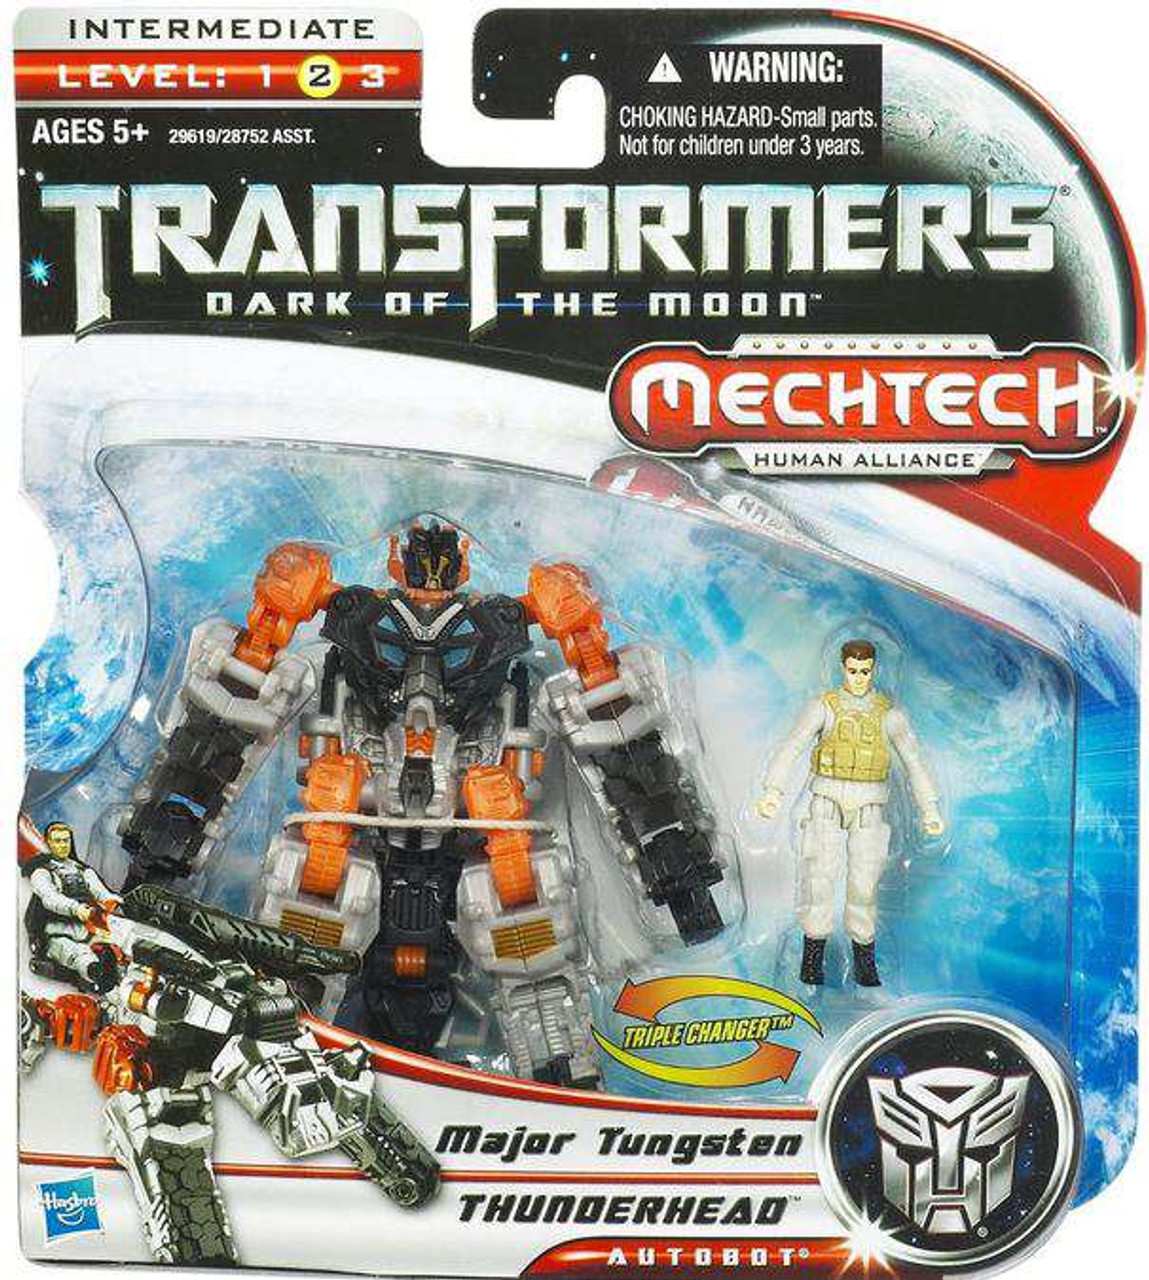 Transformers Dark of the Moon Mechtech Thunderhead with Major Tungsten Action Figure Set